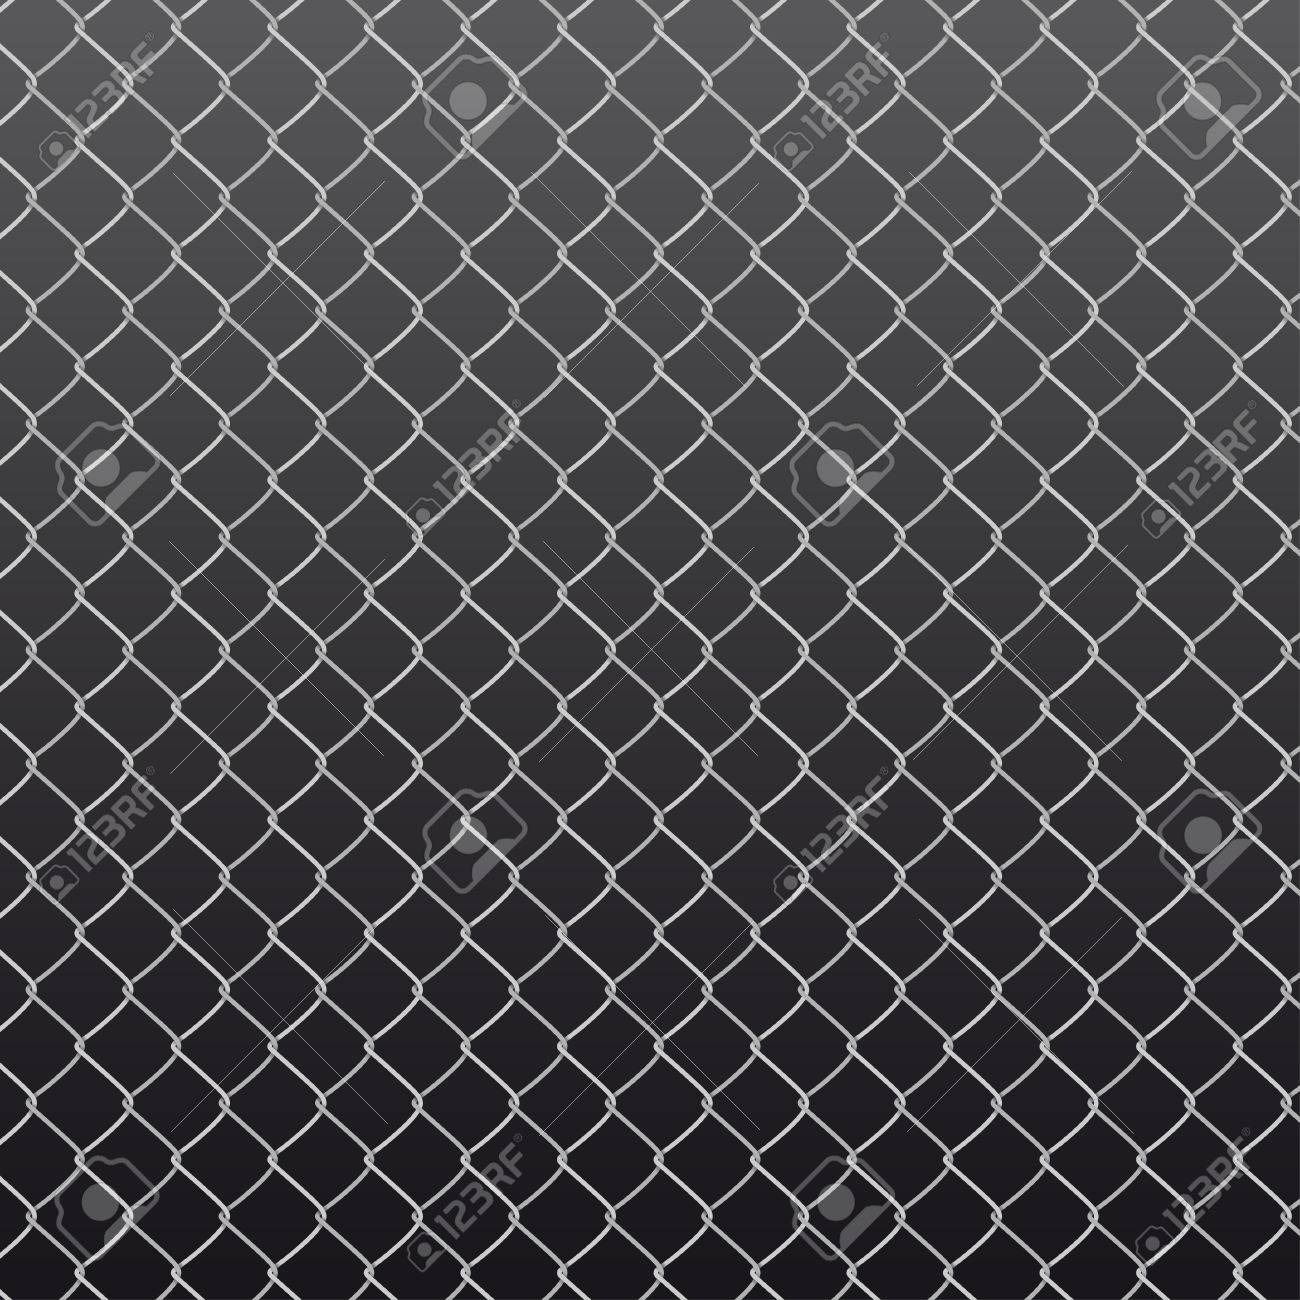 chain link fence texture. Seamless Metal Chain Link Fence On Black Background. Wired Pattern In Shades Of Grey Texture